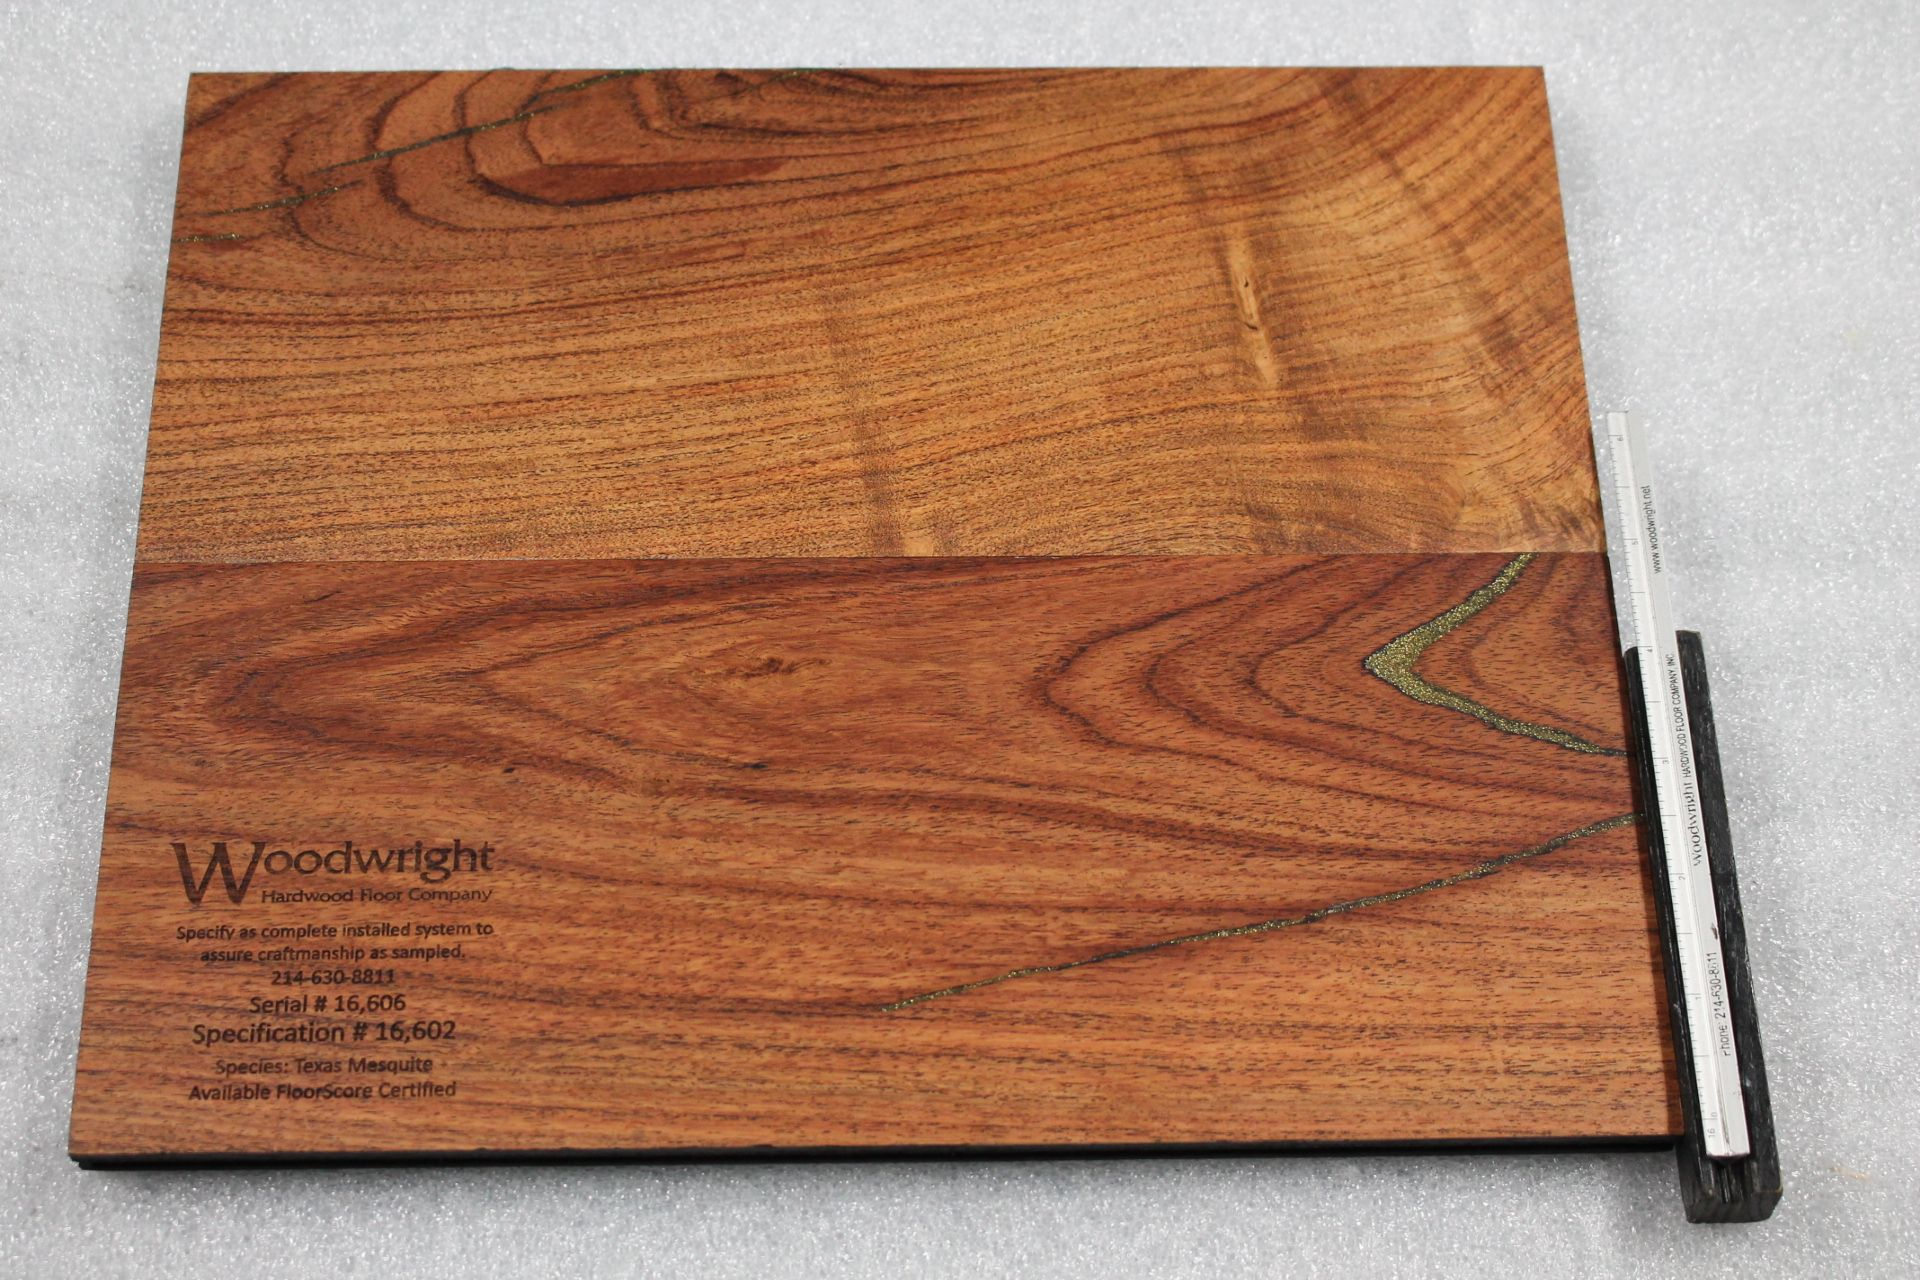 Gold Flake Inlay Grade Texas Mesquite Woodwright You Can Just About